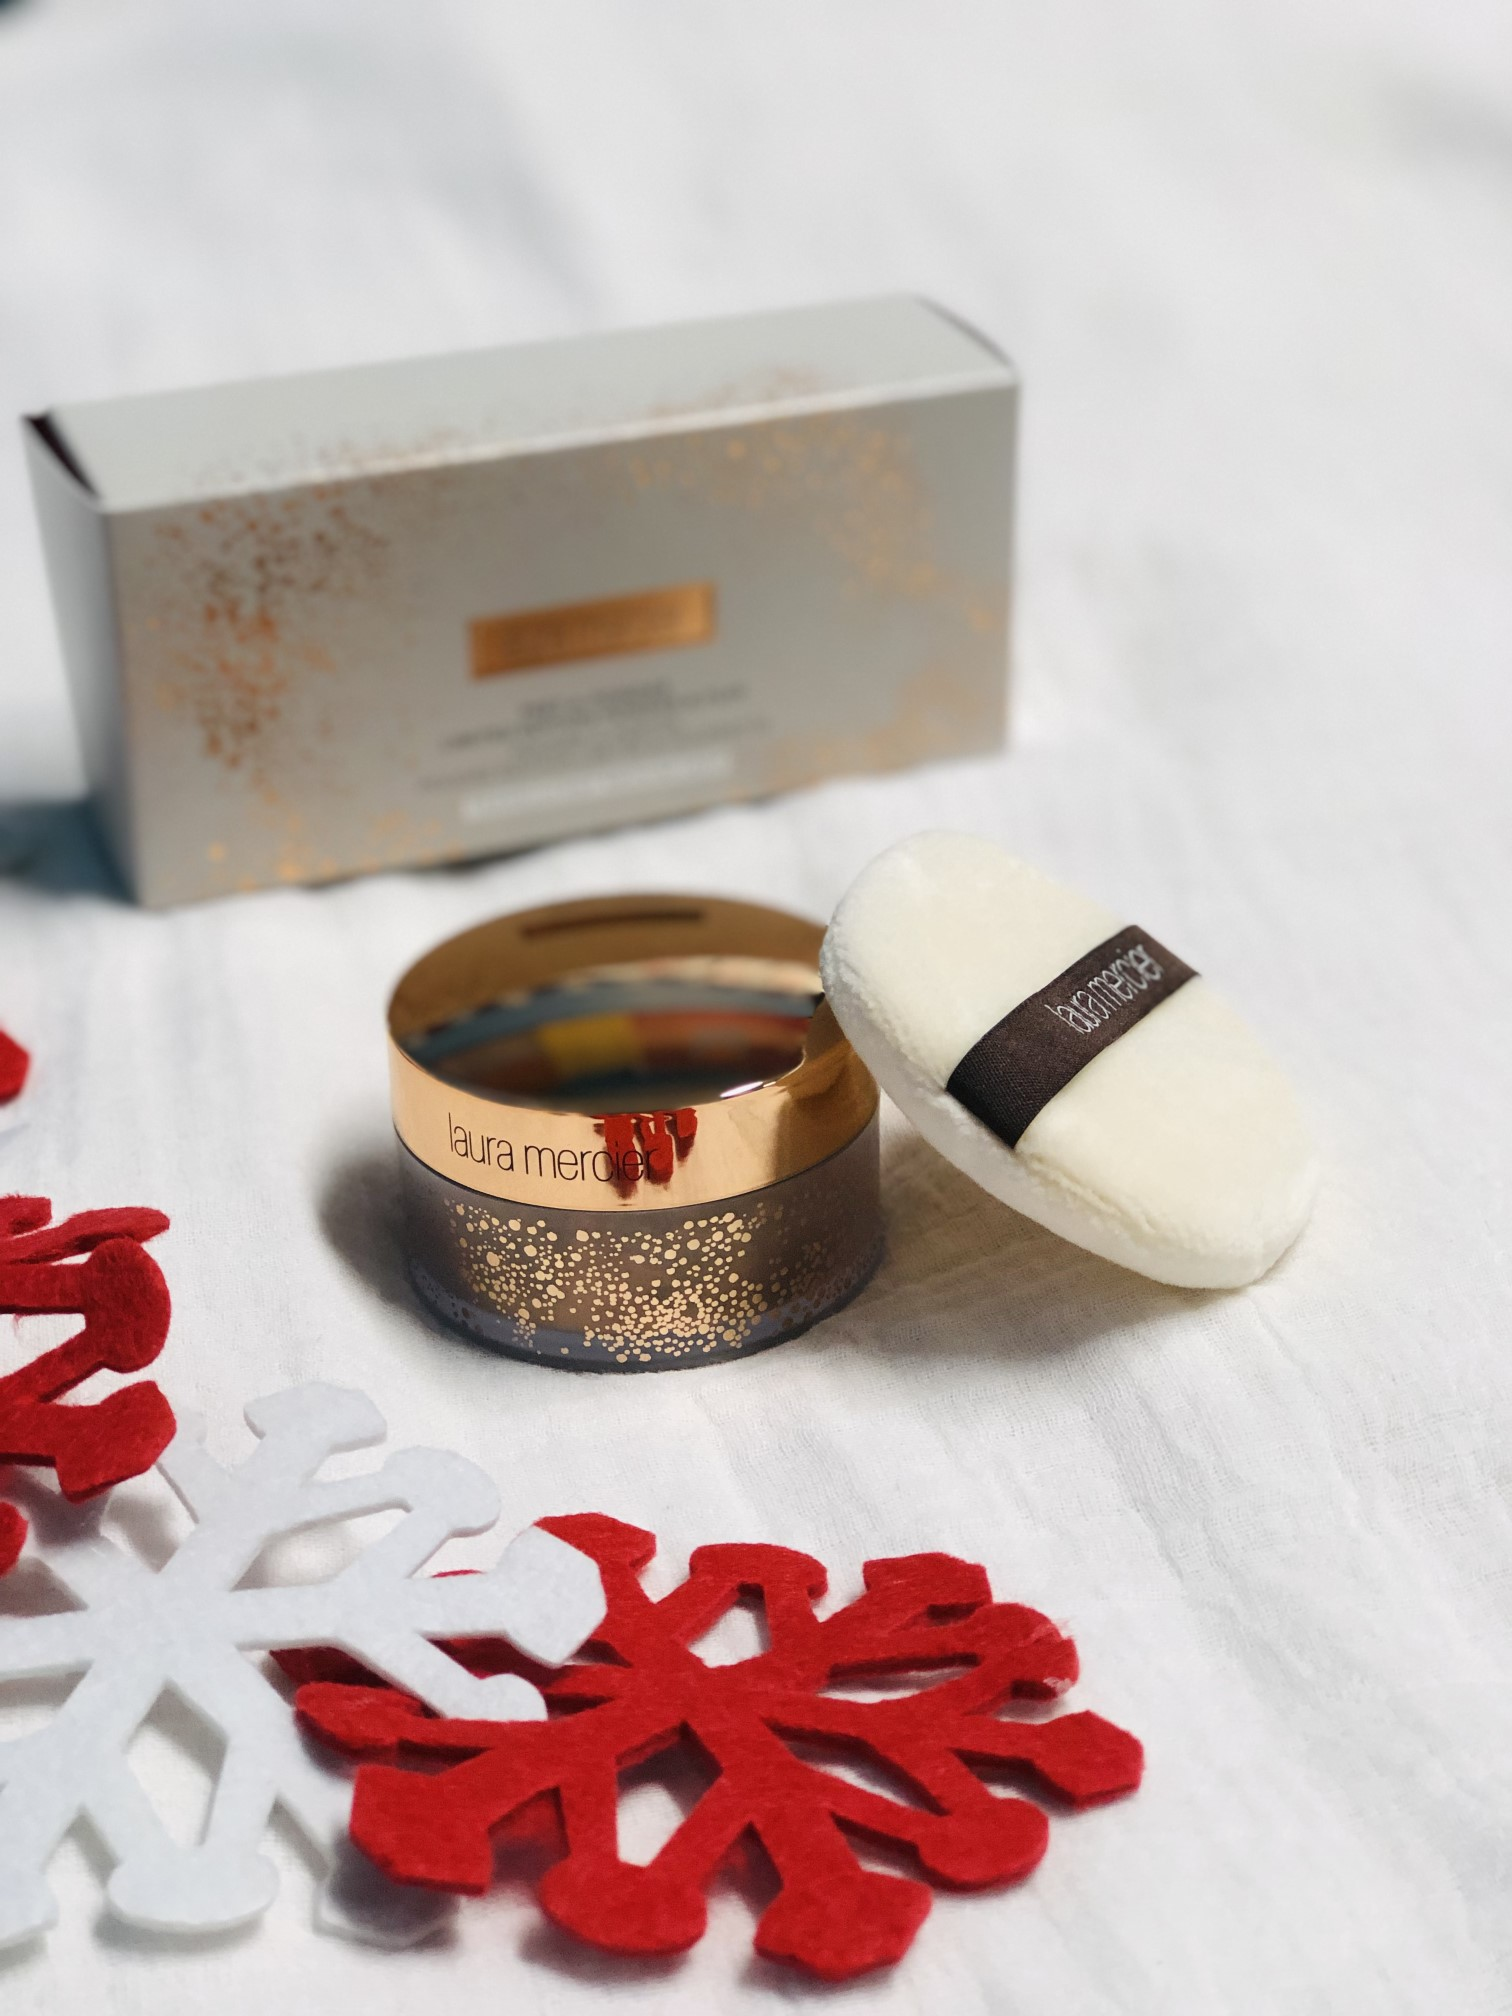 laura mercier pret a powder puff holiday 2018 collection